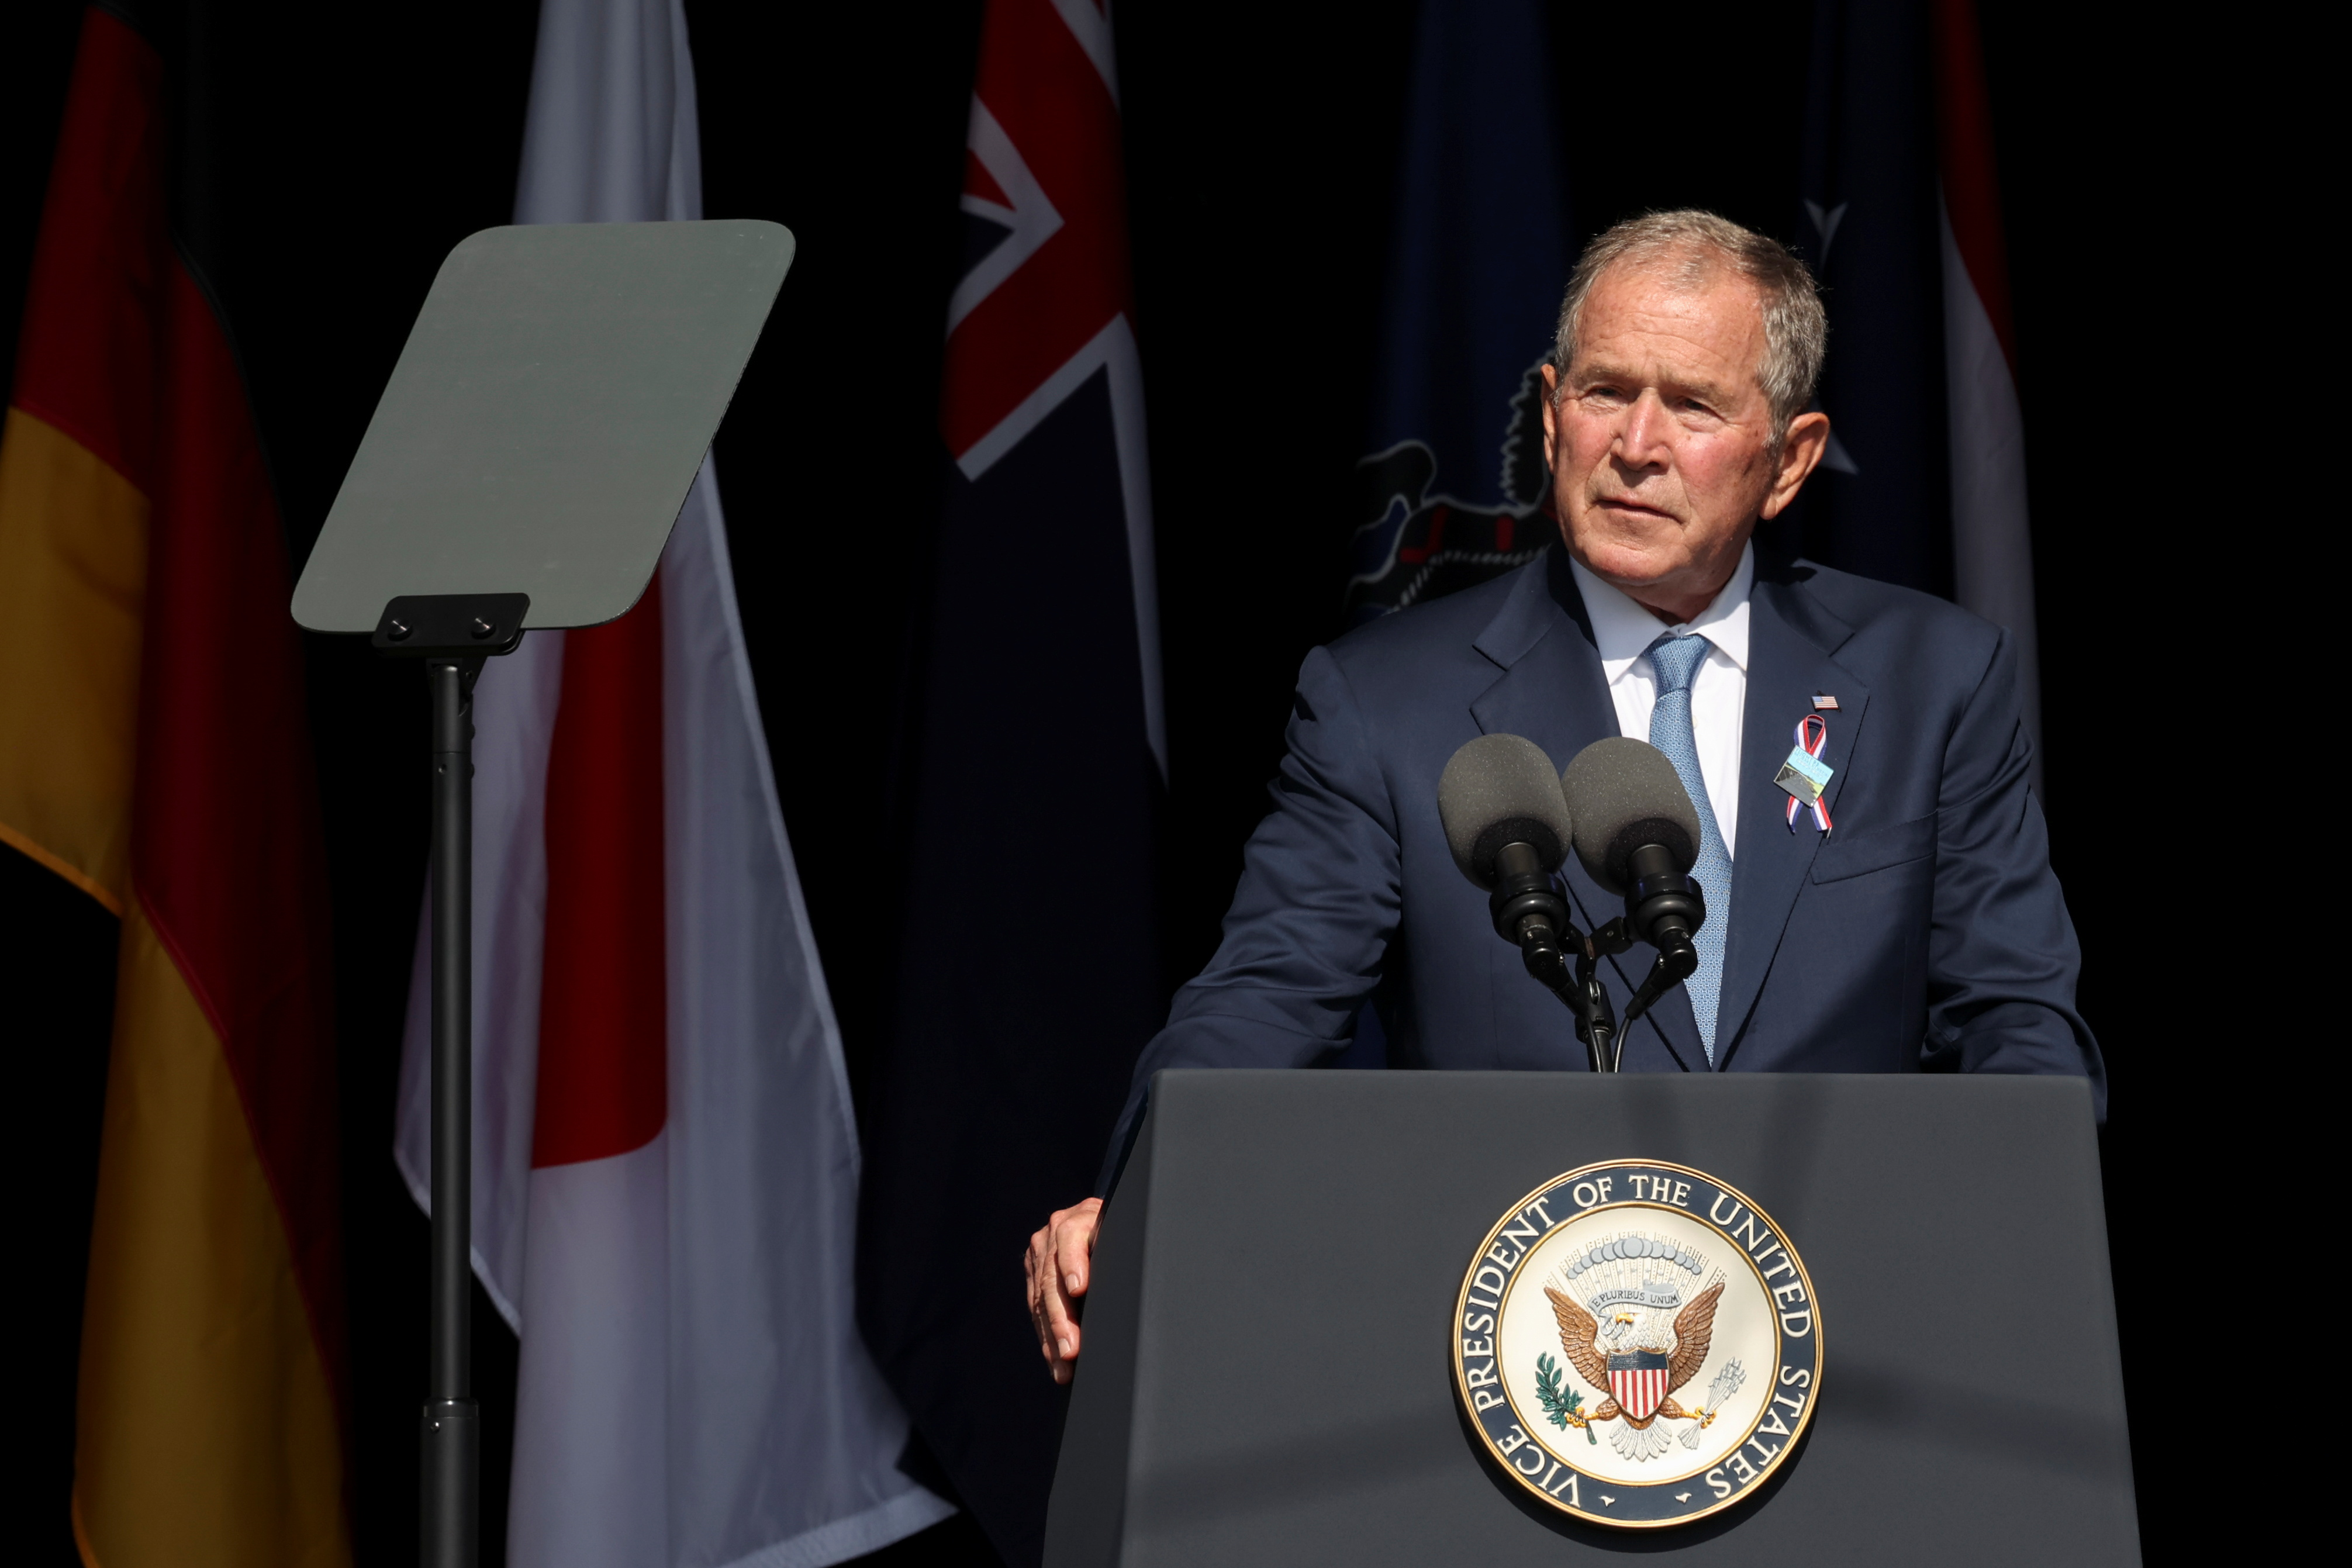 Former U.S. President George W. Bush speaks during an event commemorating the 20th anniversary of the September 11, 2001 attacks at the Flight 93 National Memorial in Stoystown, Pennsylvania, U.S., September 11, 2021. REUTERS/Hannah Beier